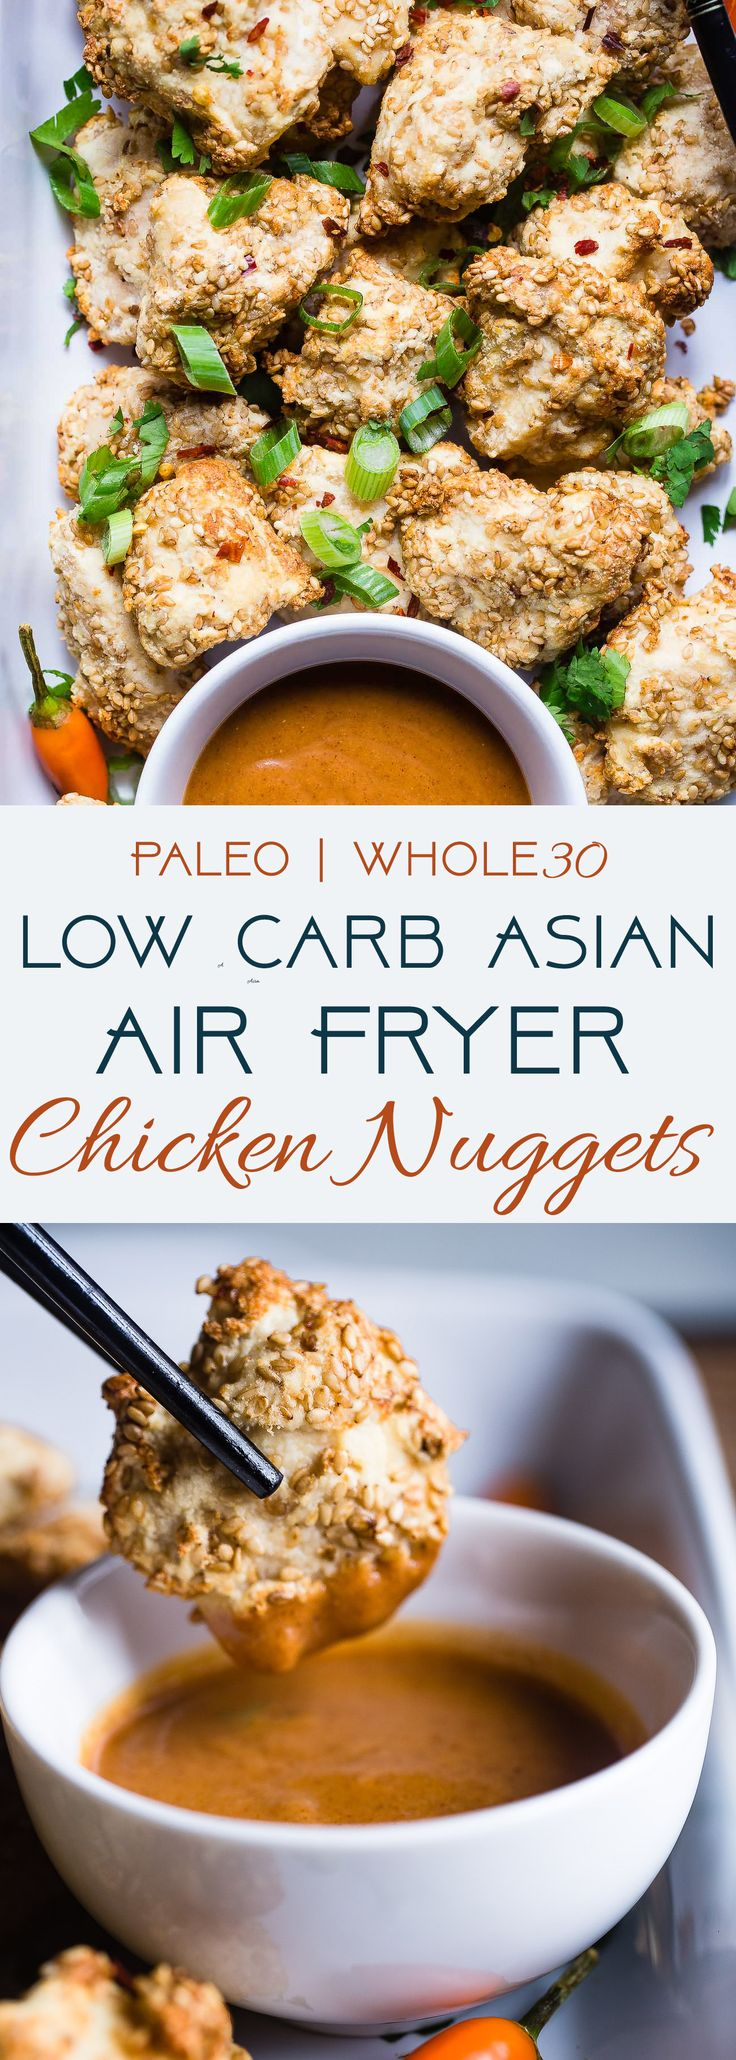 Crispy low carb air fryer chicken nuggets these baked